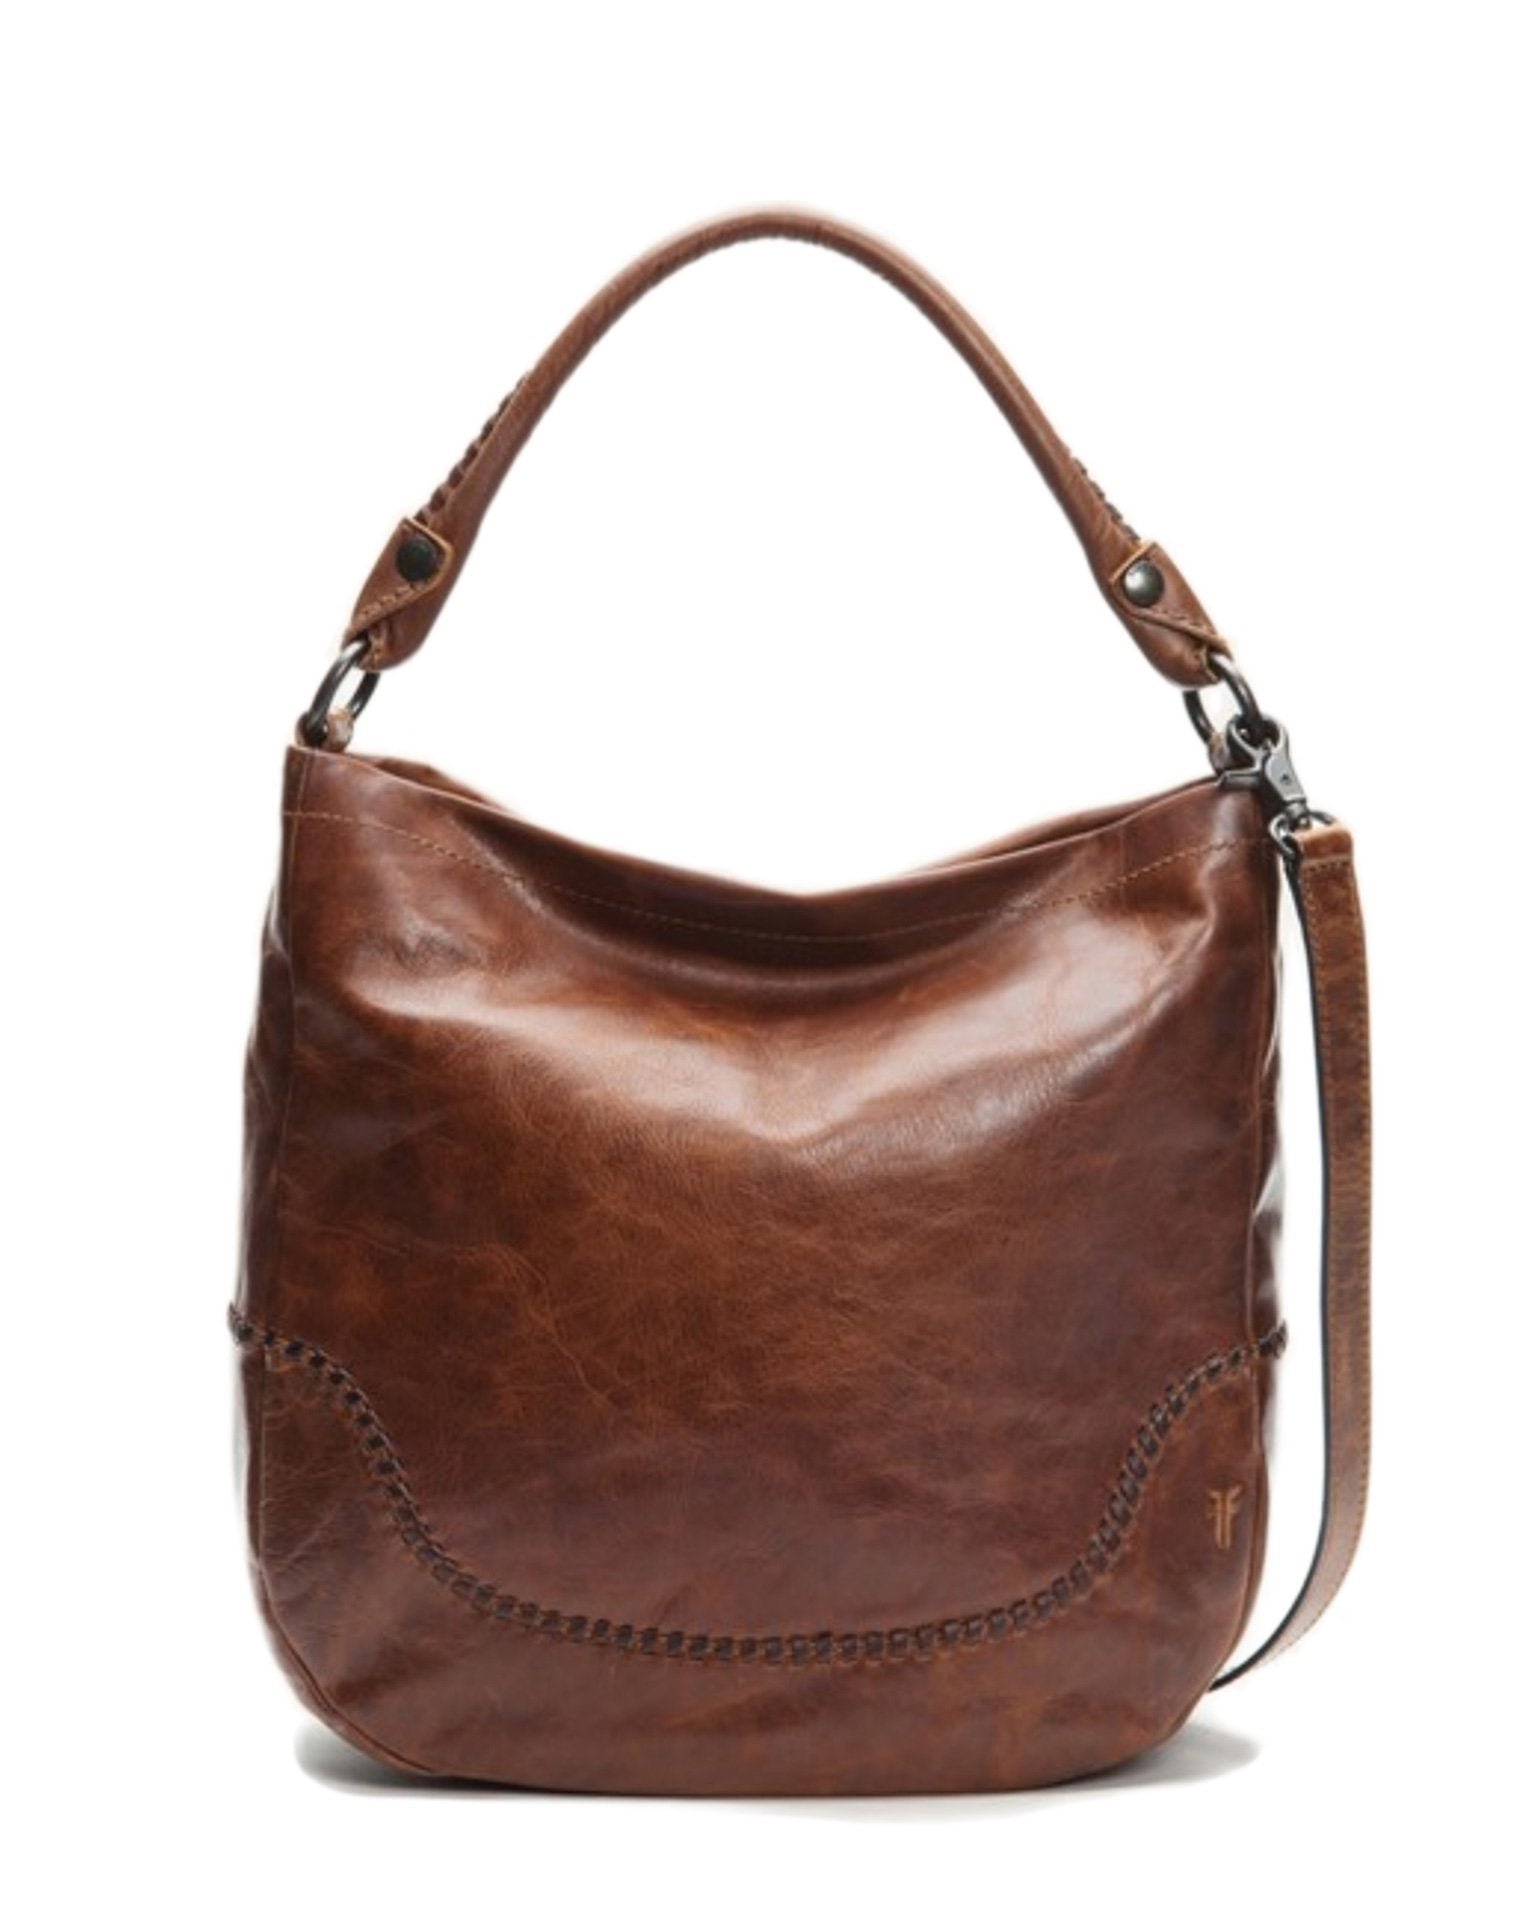 Frye Accessories Cognac / O/S Melissa Whipstitch Hobo